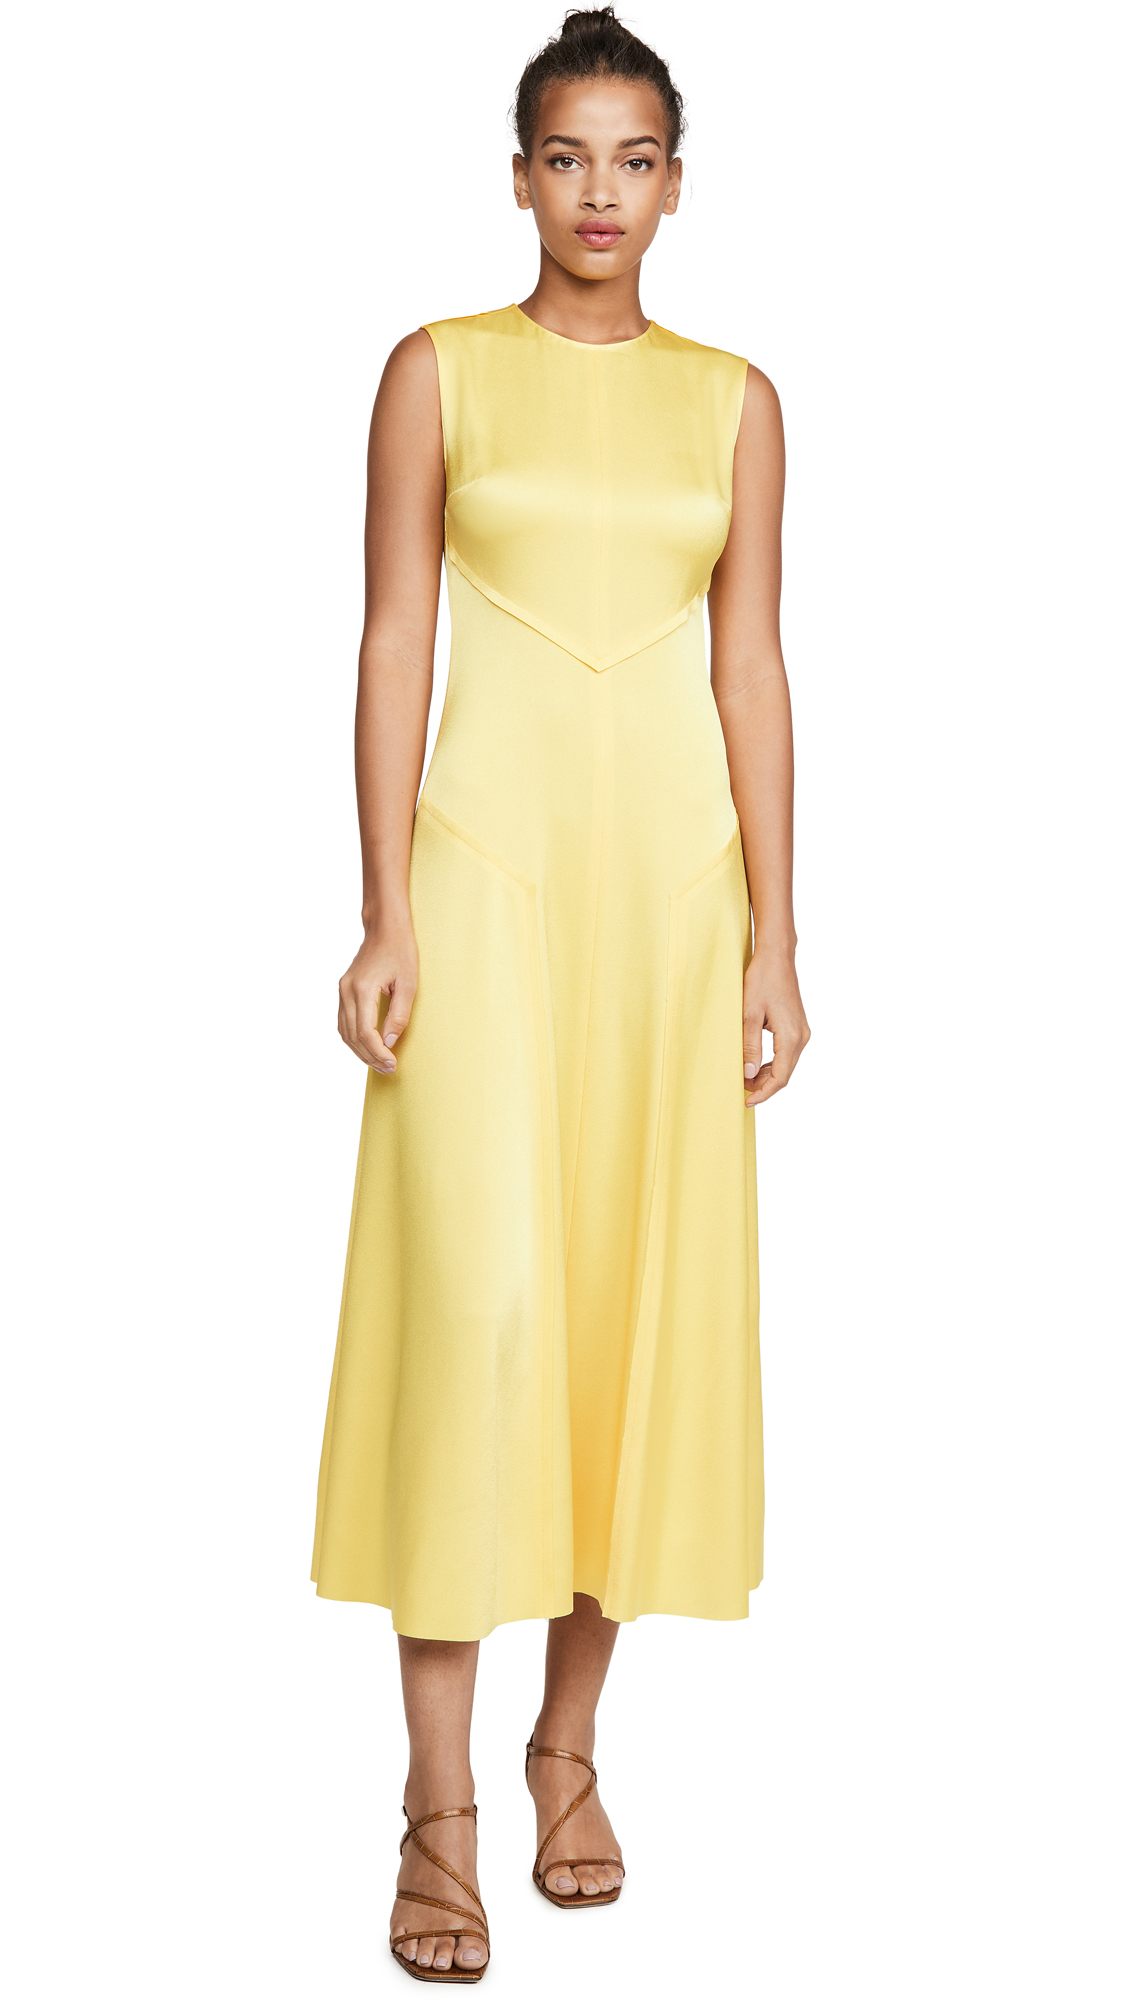 Jason Wu Sleeveless Crew Neck Dress - 40% Off Sale